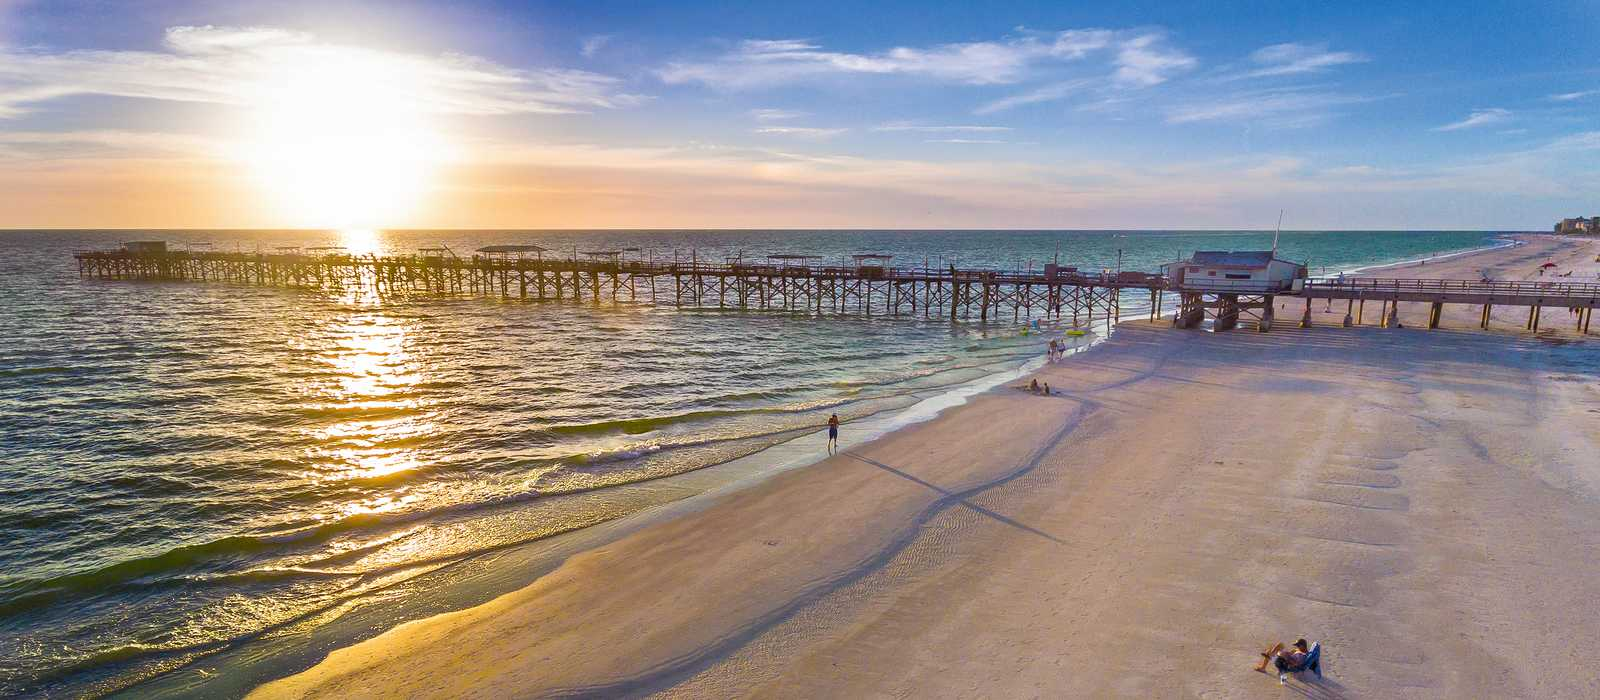 Der Redington Long Pier in Florida bei Sonnenuntergang